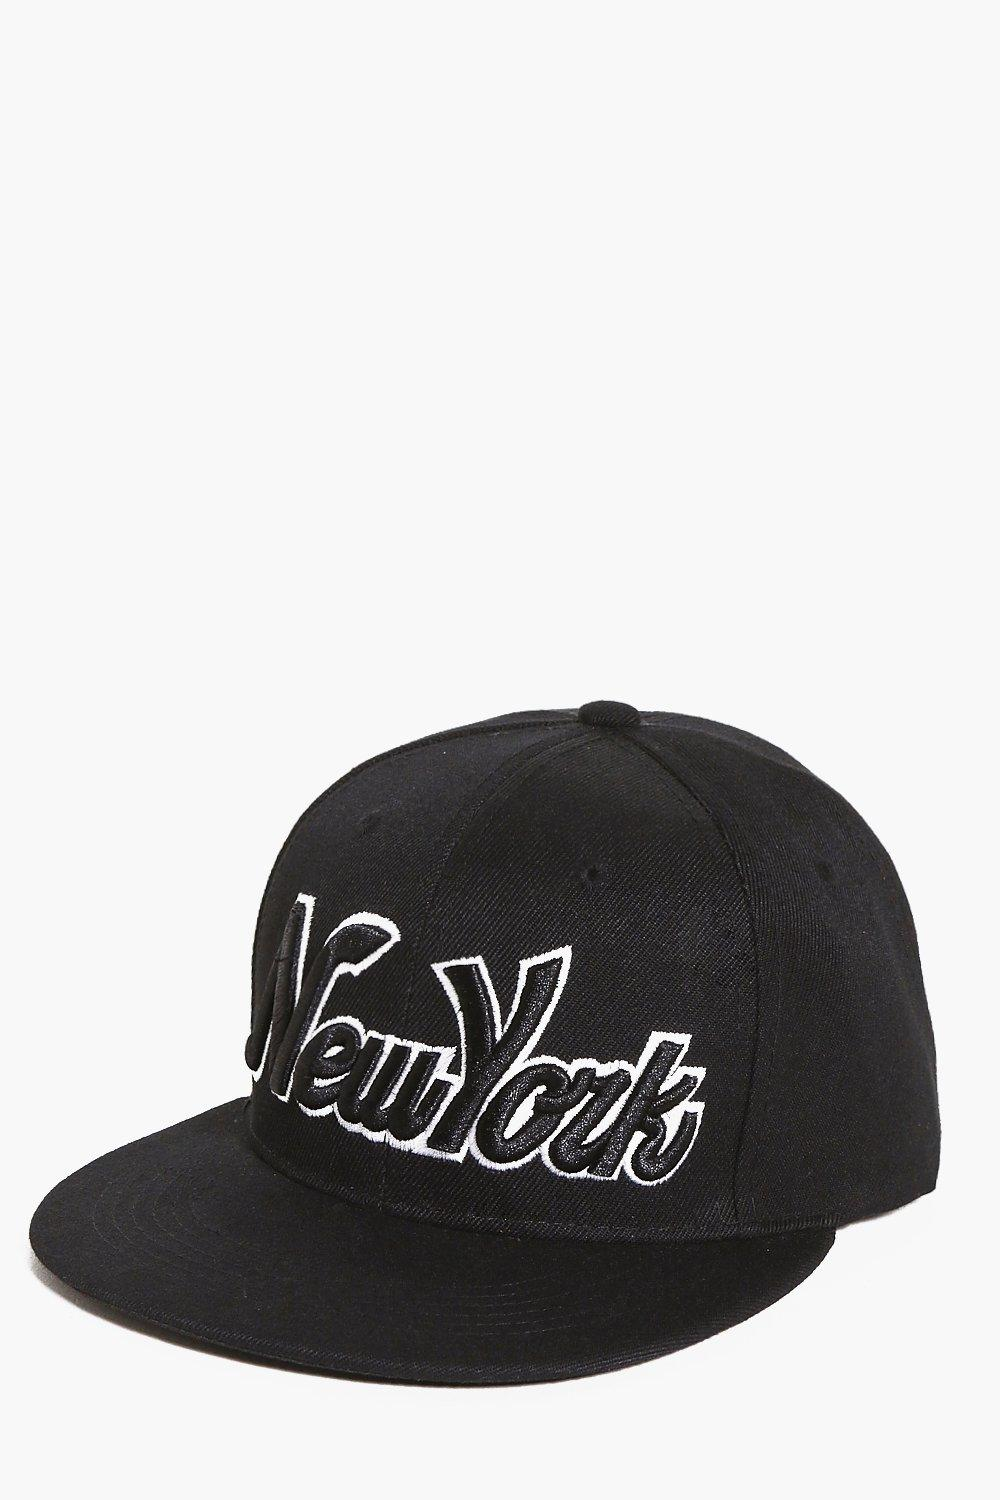 New York Embroidered Snapback